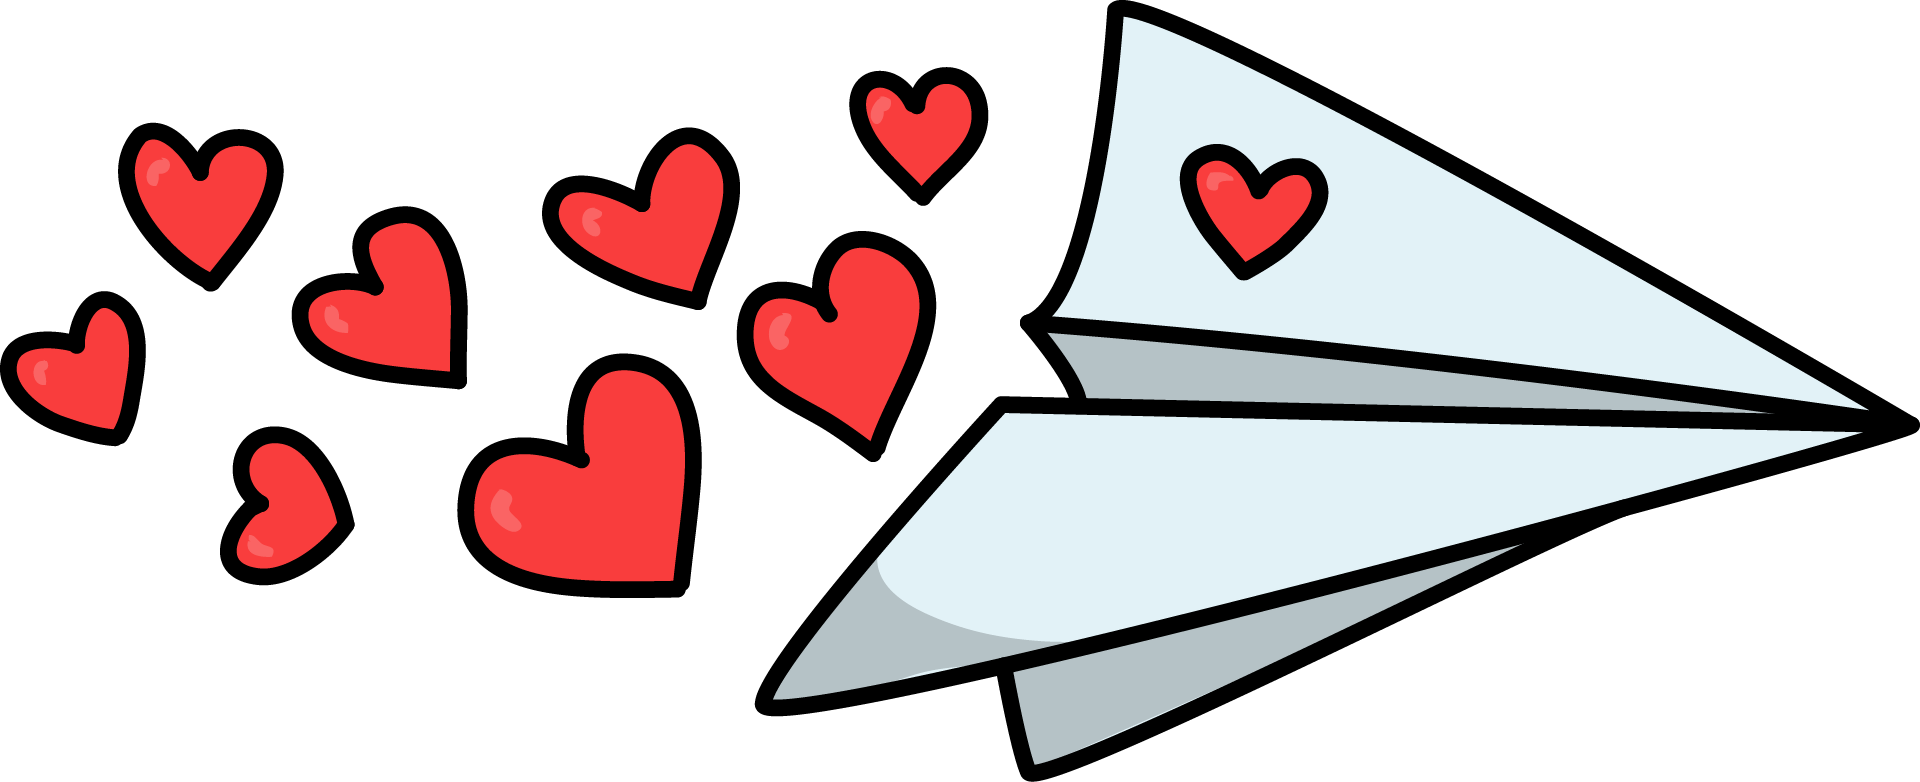 Paper free no watermarks. Clipart airplane love